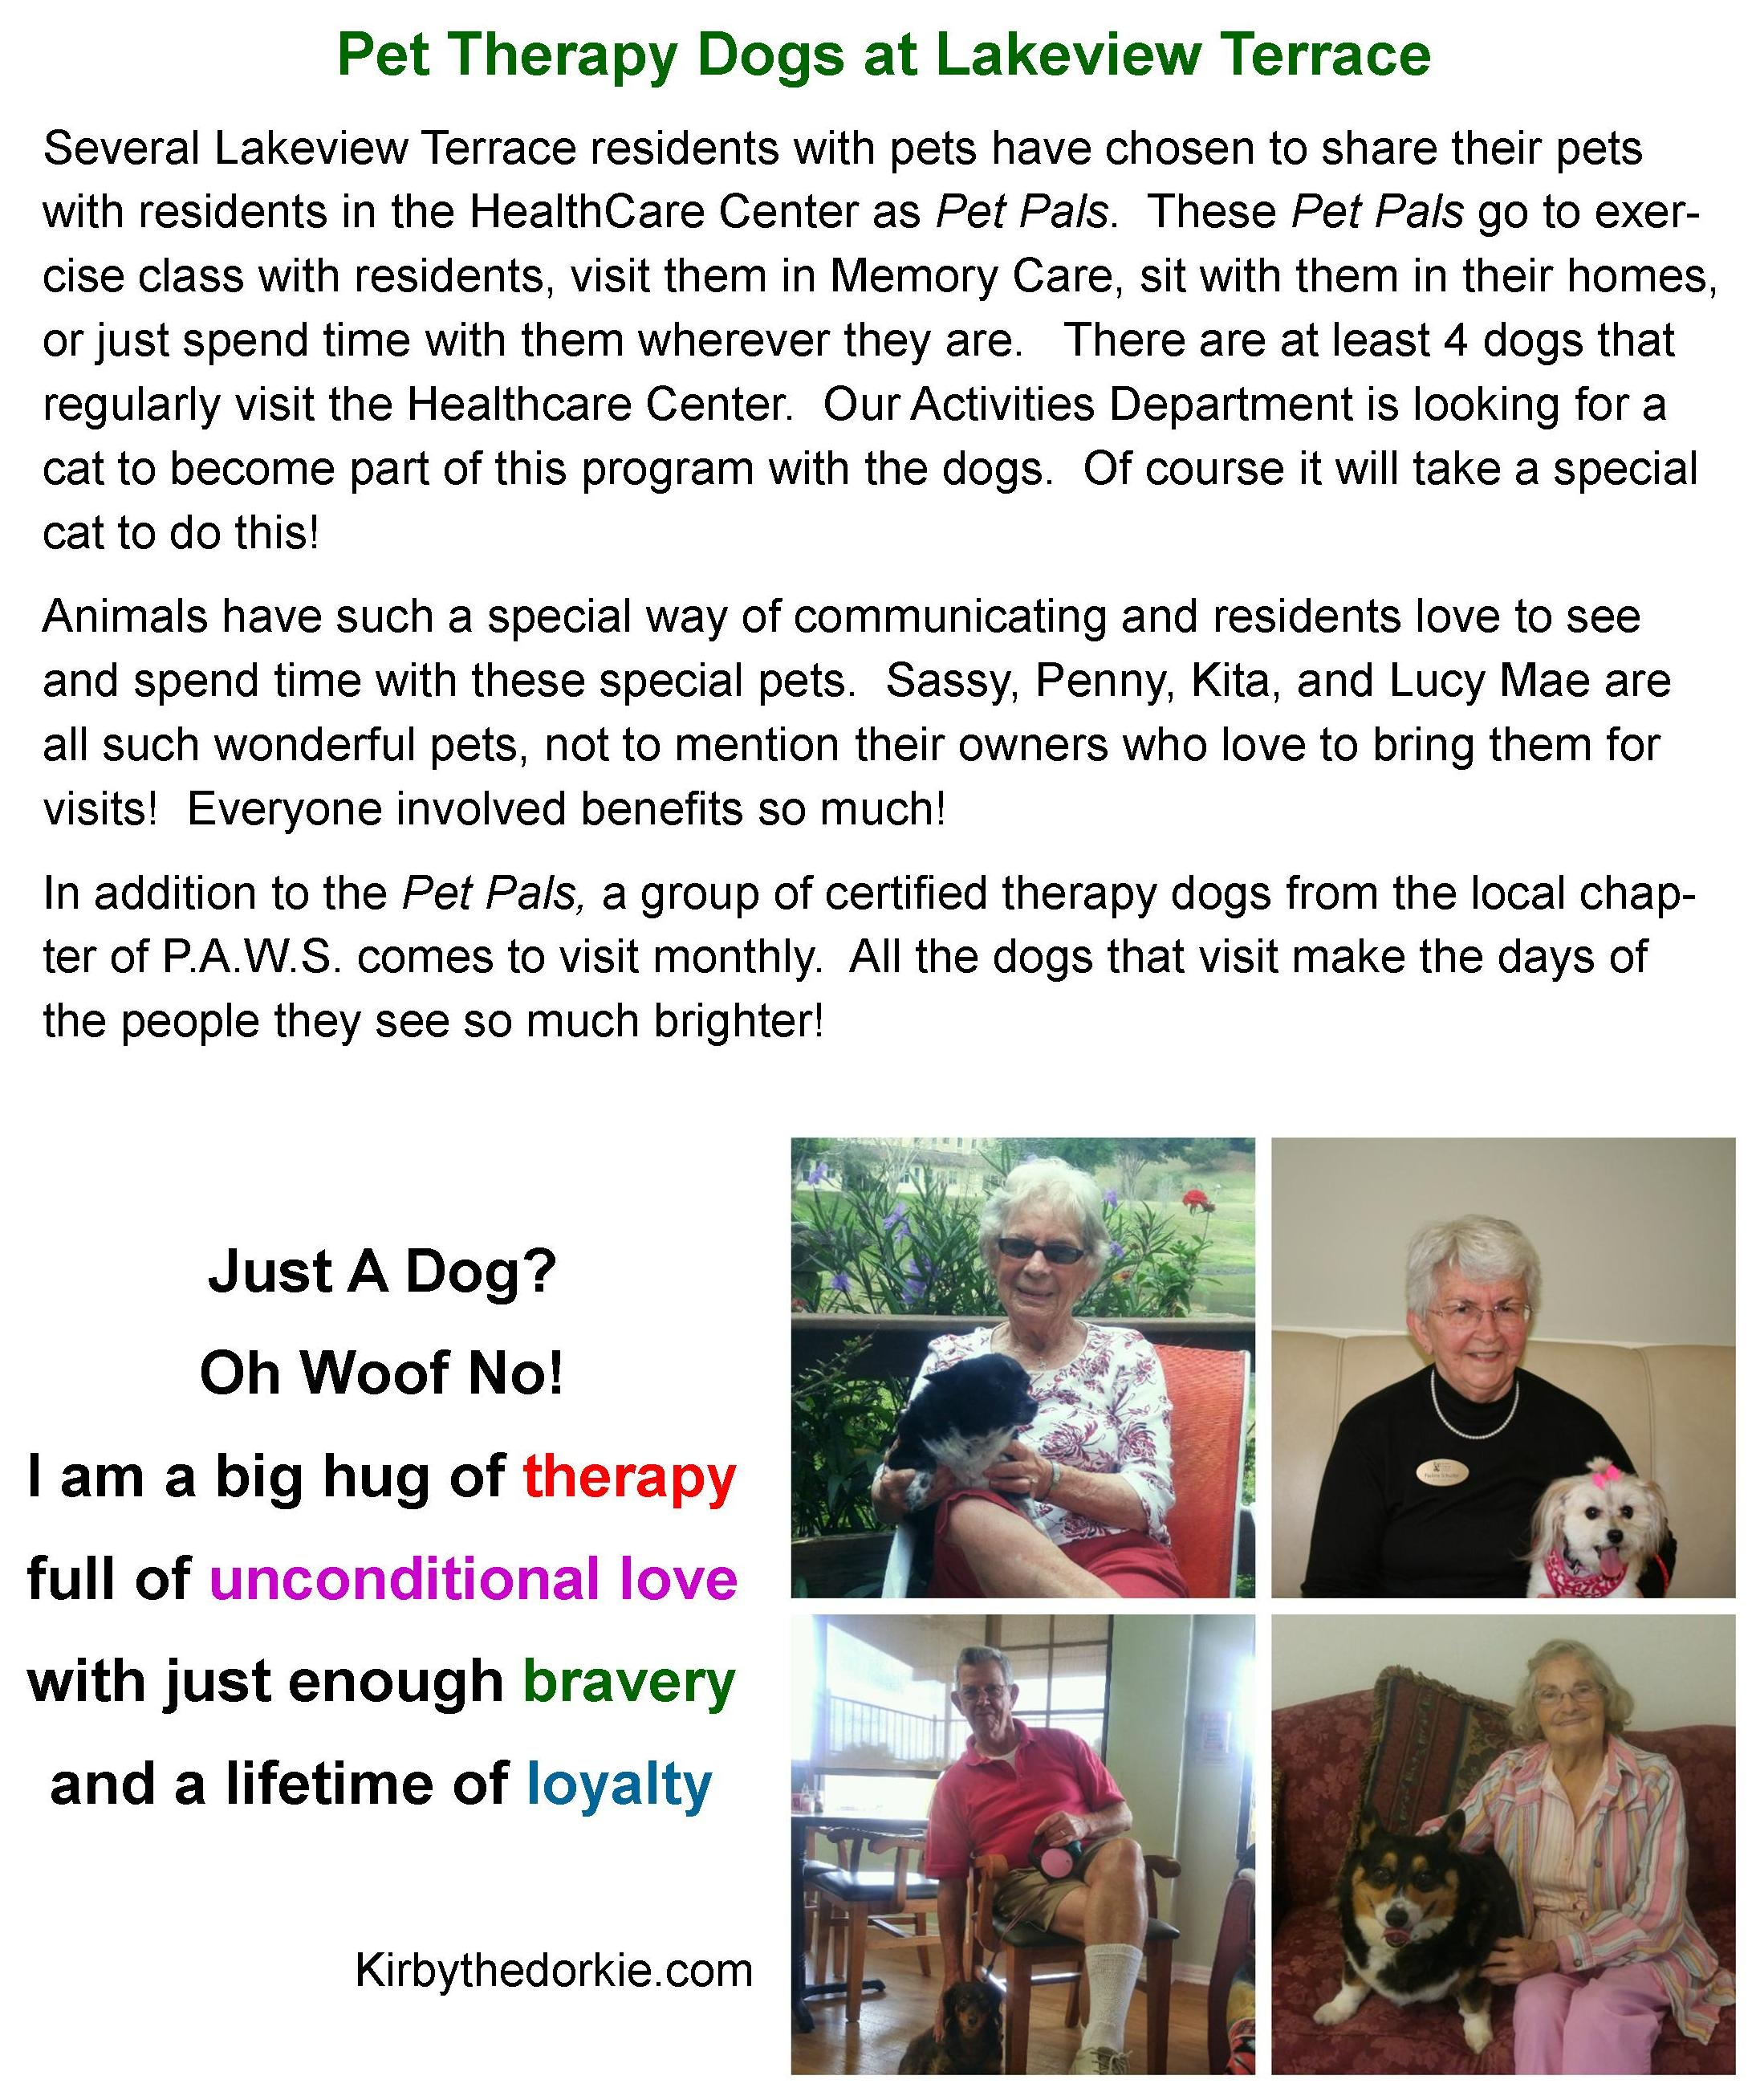 Pet Therapy Dogs at Lakeview Terrace